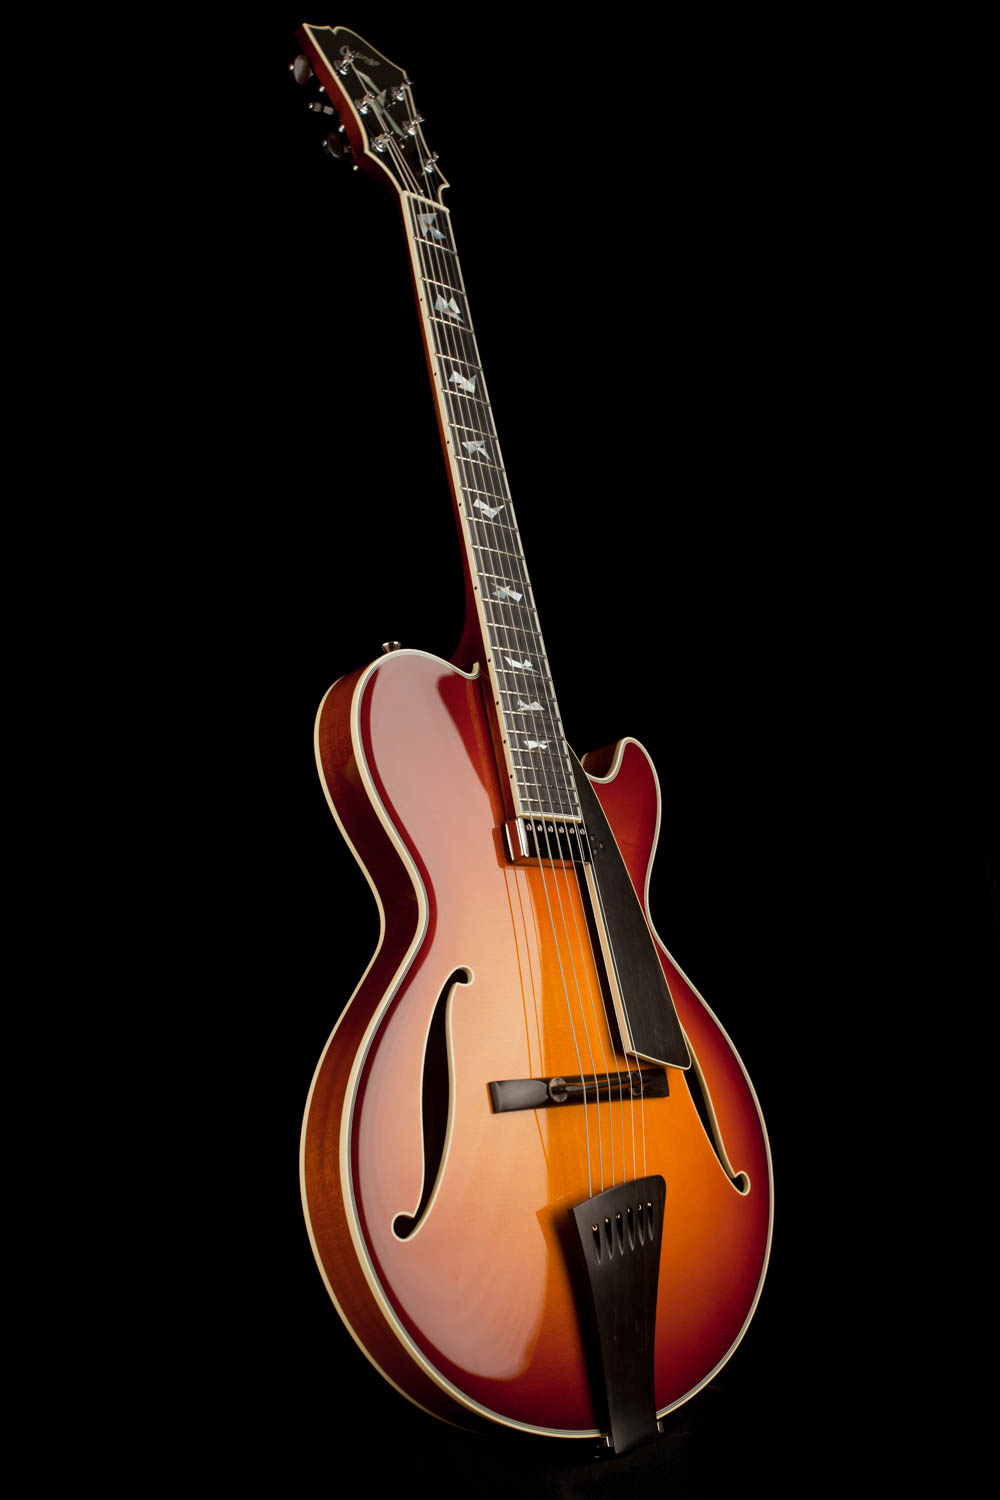 Collings Cl Jazz Thin Line Archtop Electric Guitar The Following Diagram Details Various Parts Of An